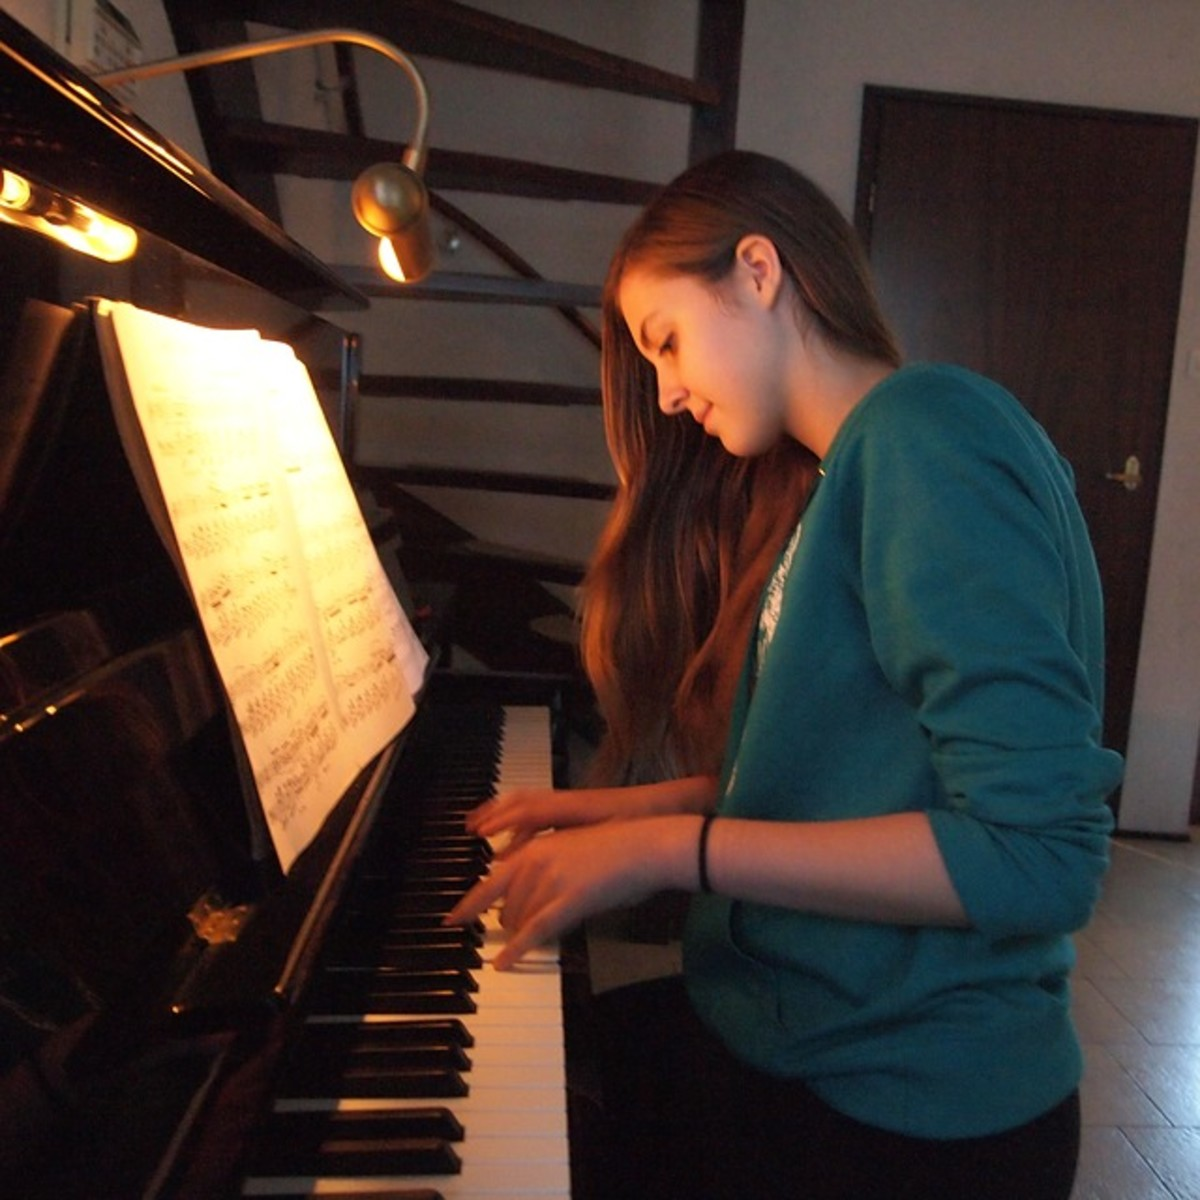 A young woman playing her piano during some free time to make her happy and bring joy.